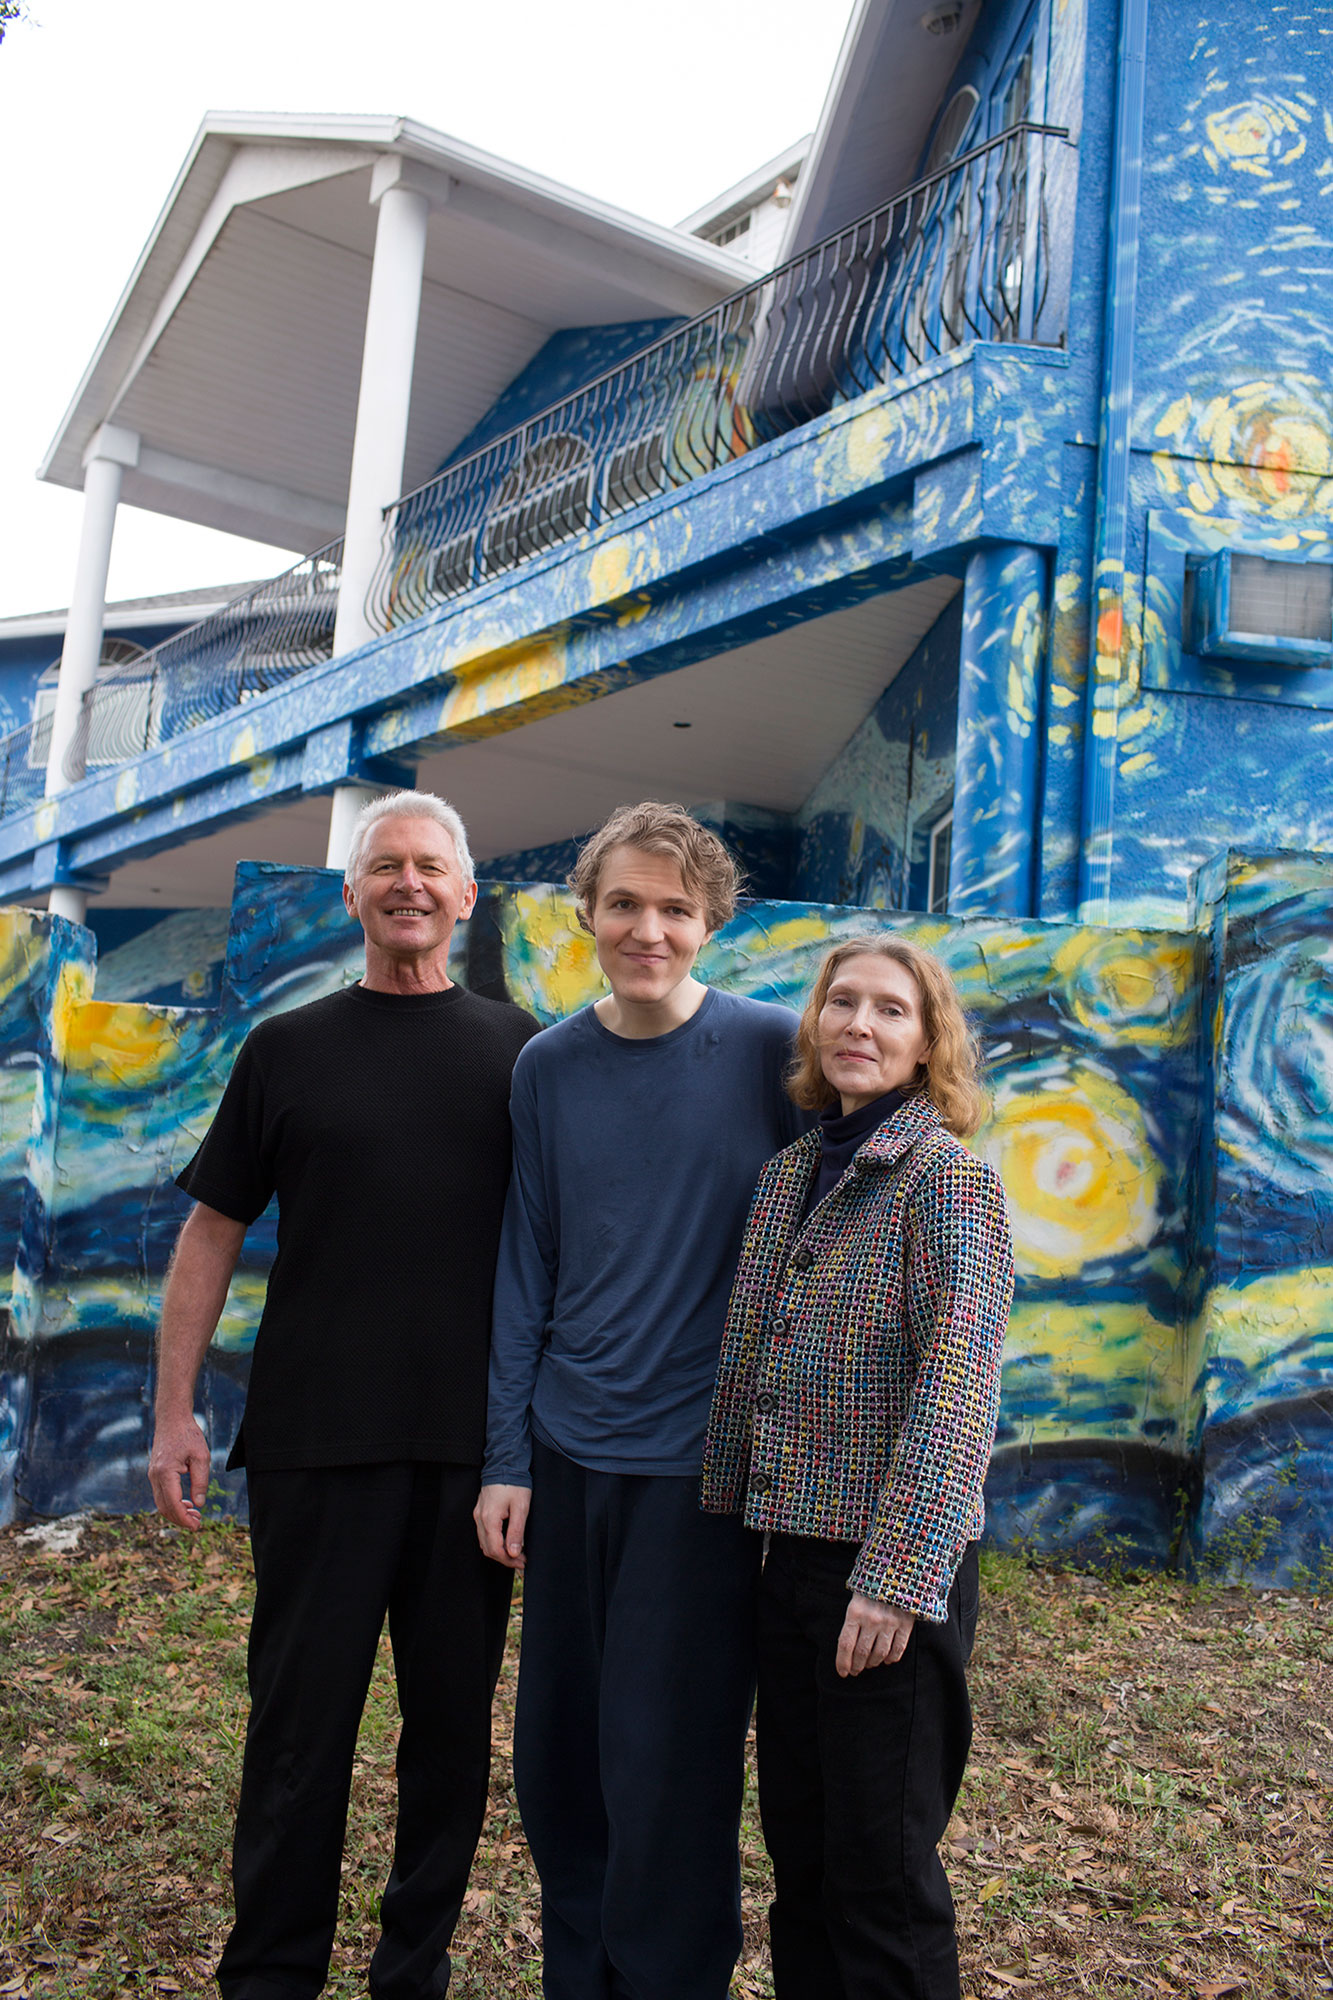 Florida Couple Who Painted Their House as a Beacon for Son with Autism Wins Battle with City